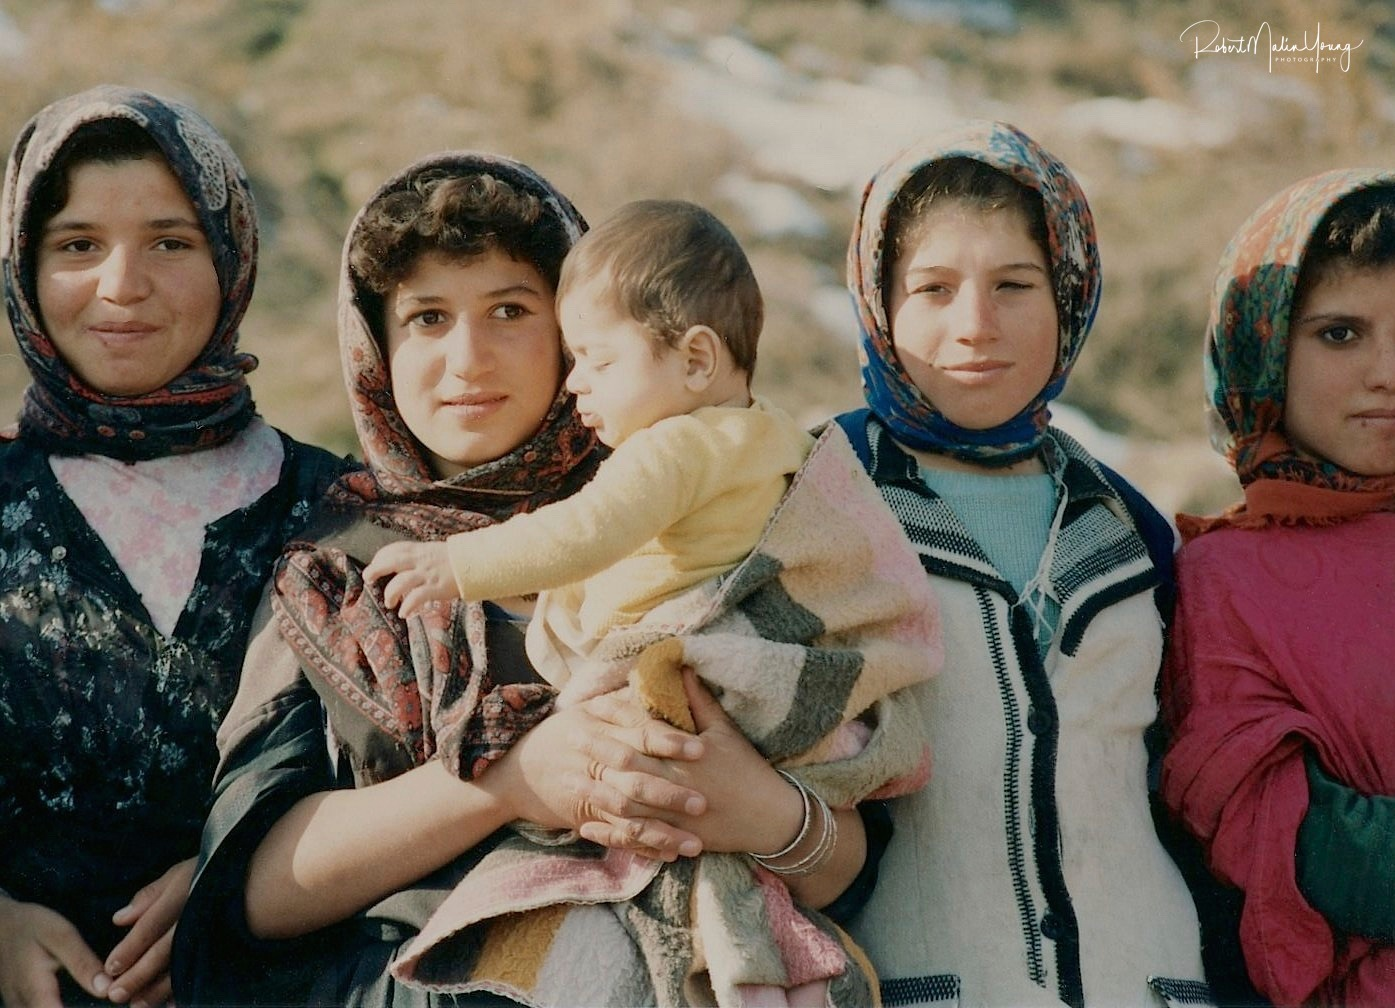 Kurdish children and Kurdistan, Iraq1992 by Robert Malin Young